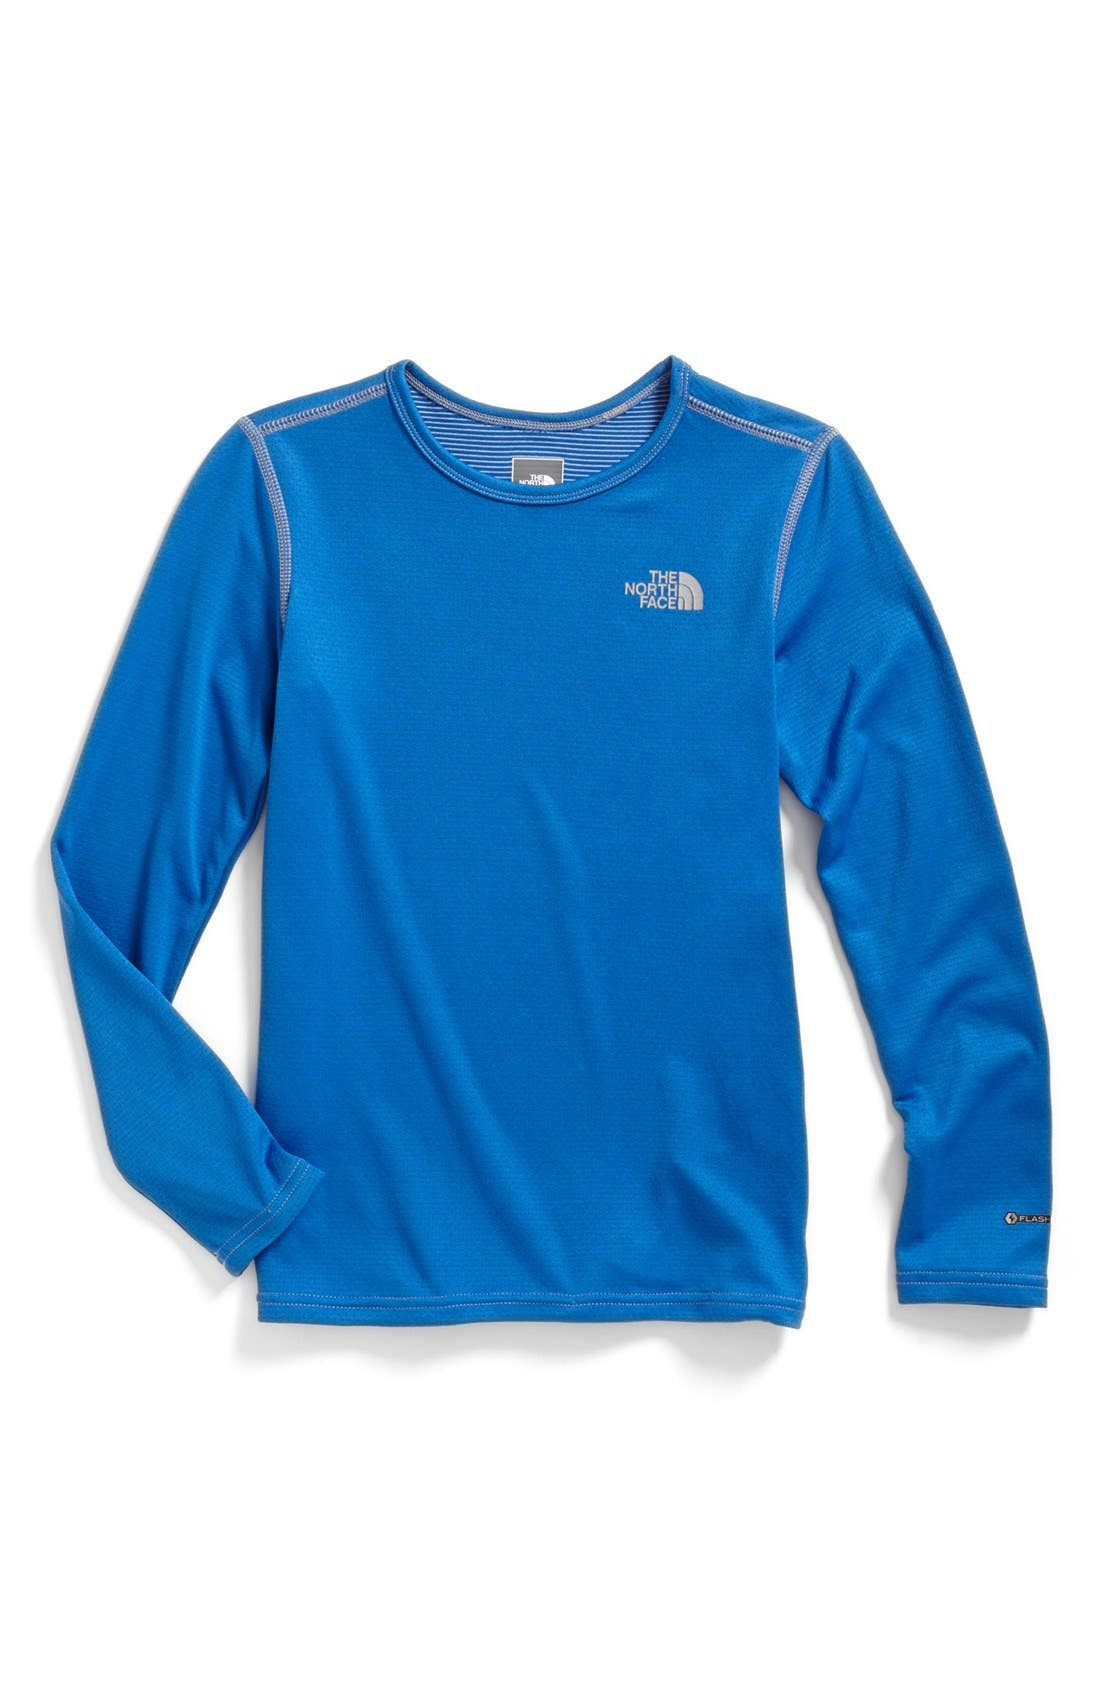 c4441c1556e8 Boys  The North Face Clothing  Hoodies